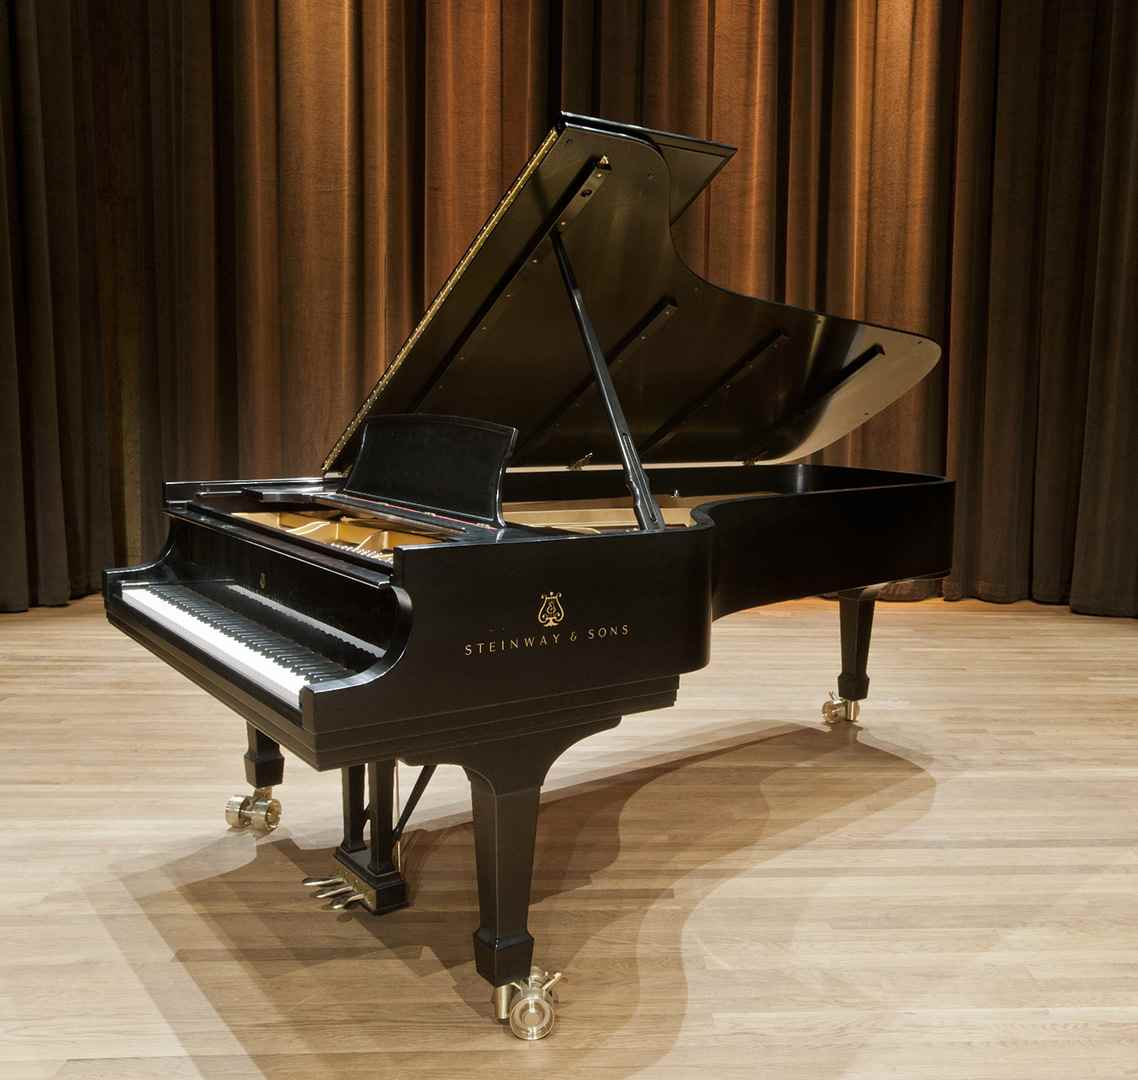 Piano Steinway & Sons de la collection de la salle Bourgie